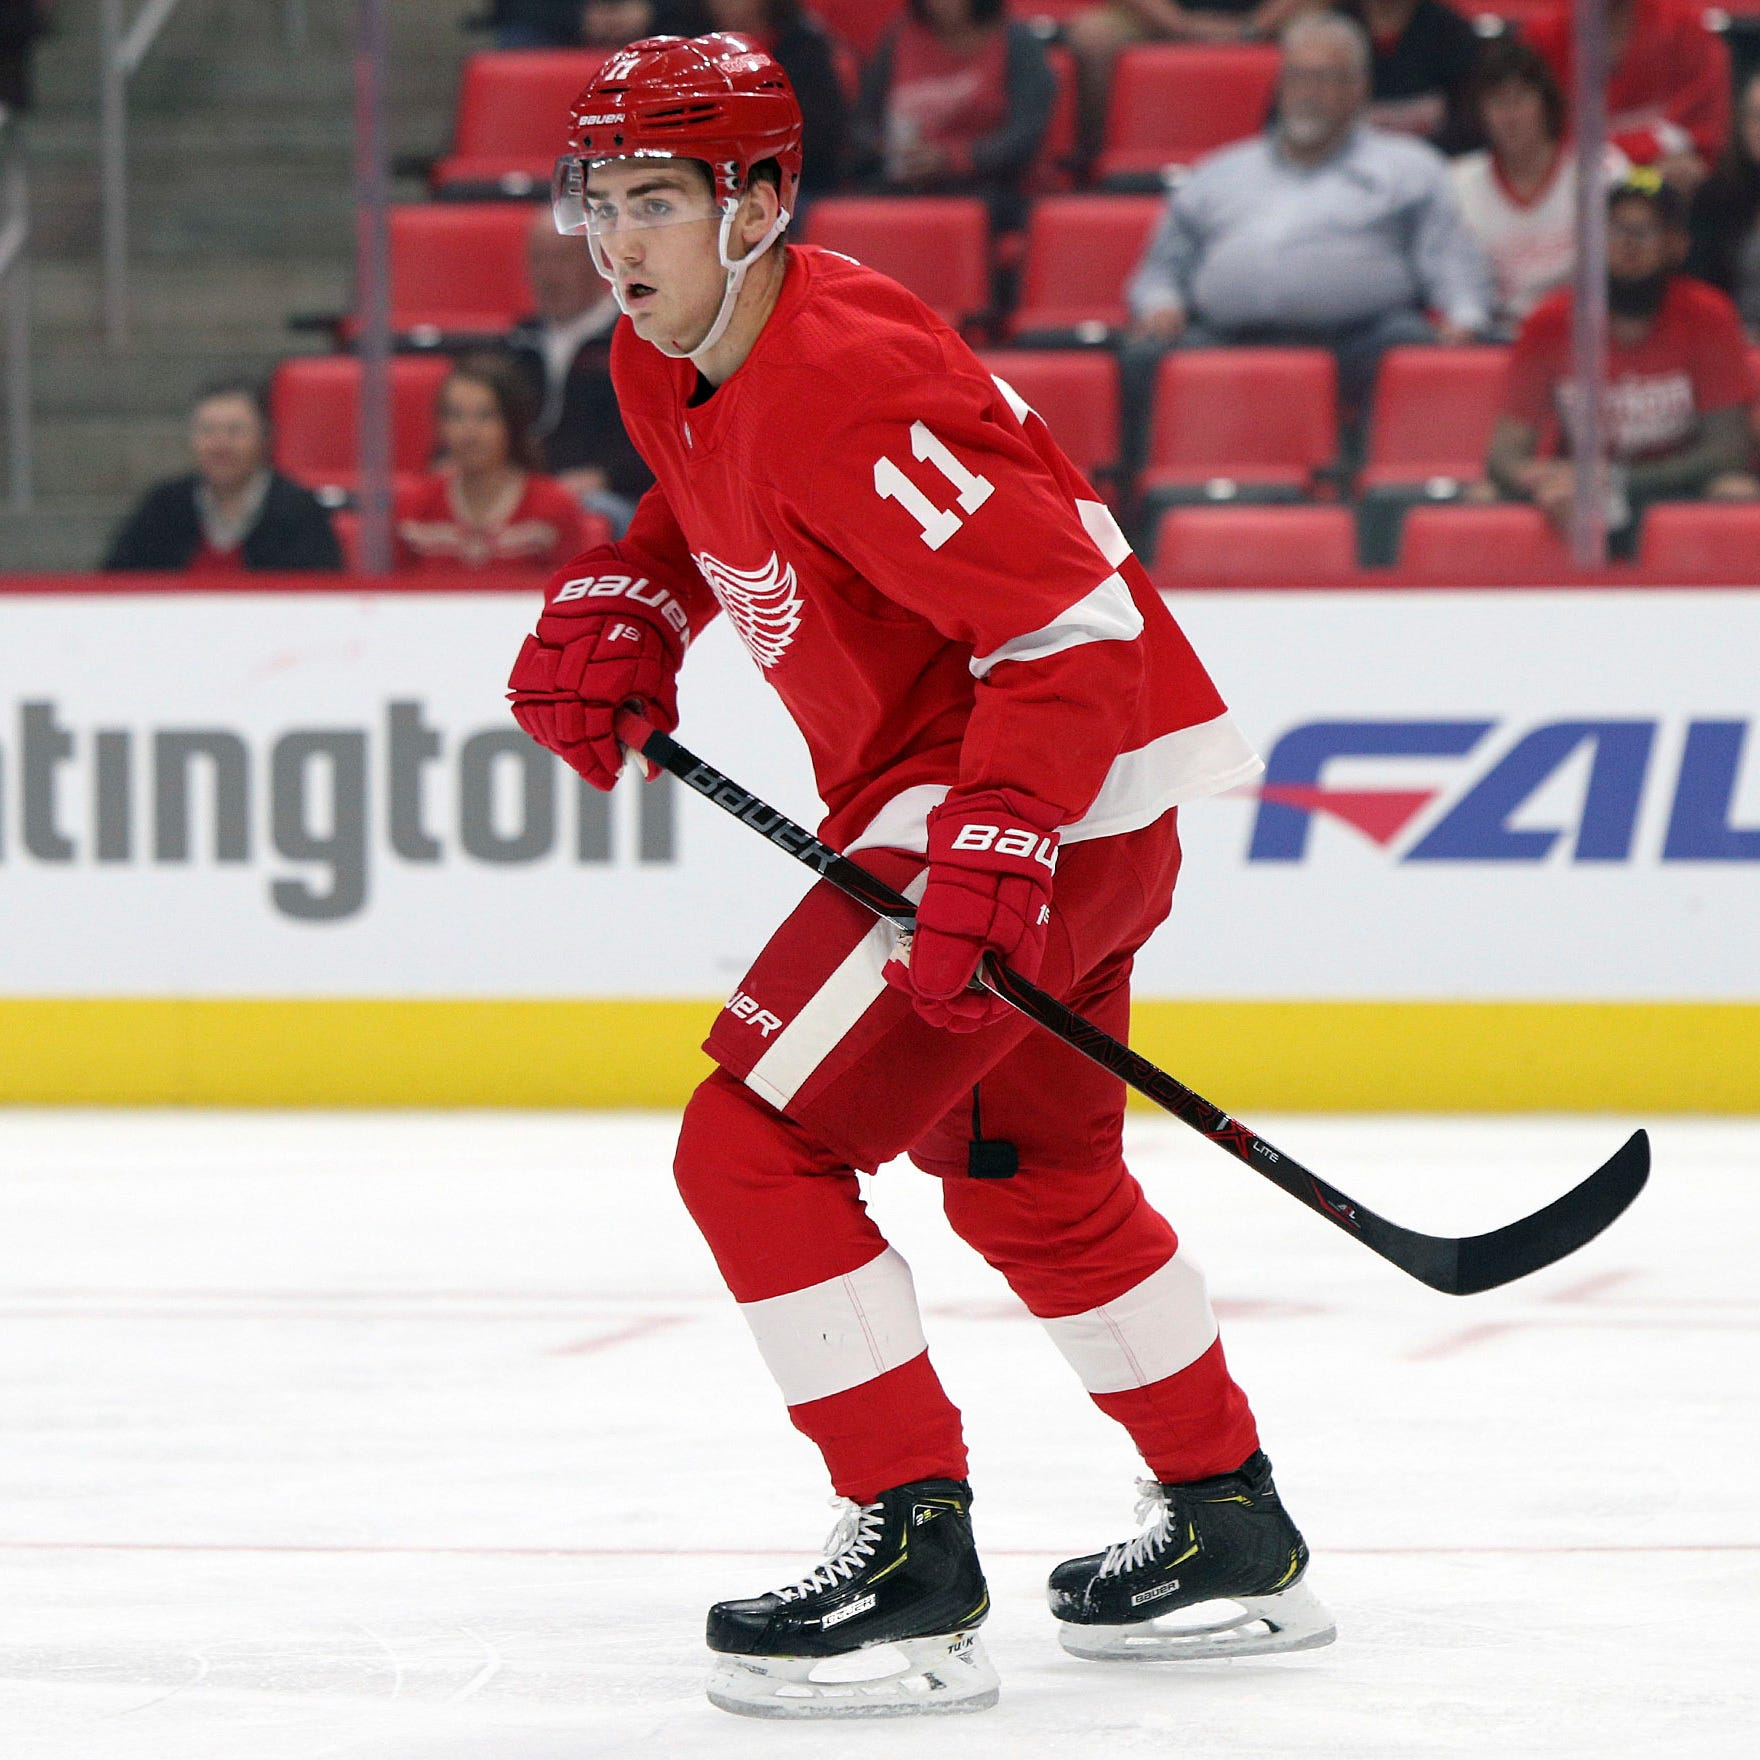 Filip Zadina shaky in debut; Detroit Red Wings win exhibition, 4-2